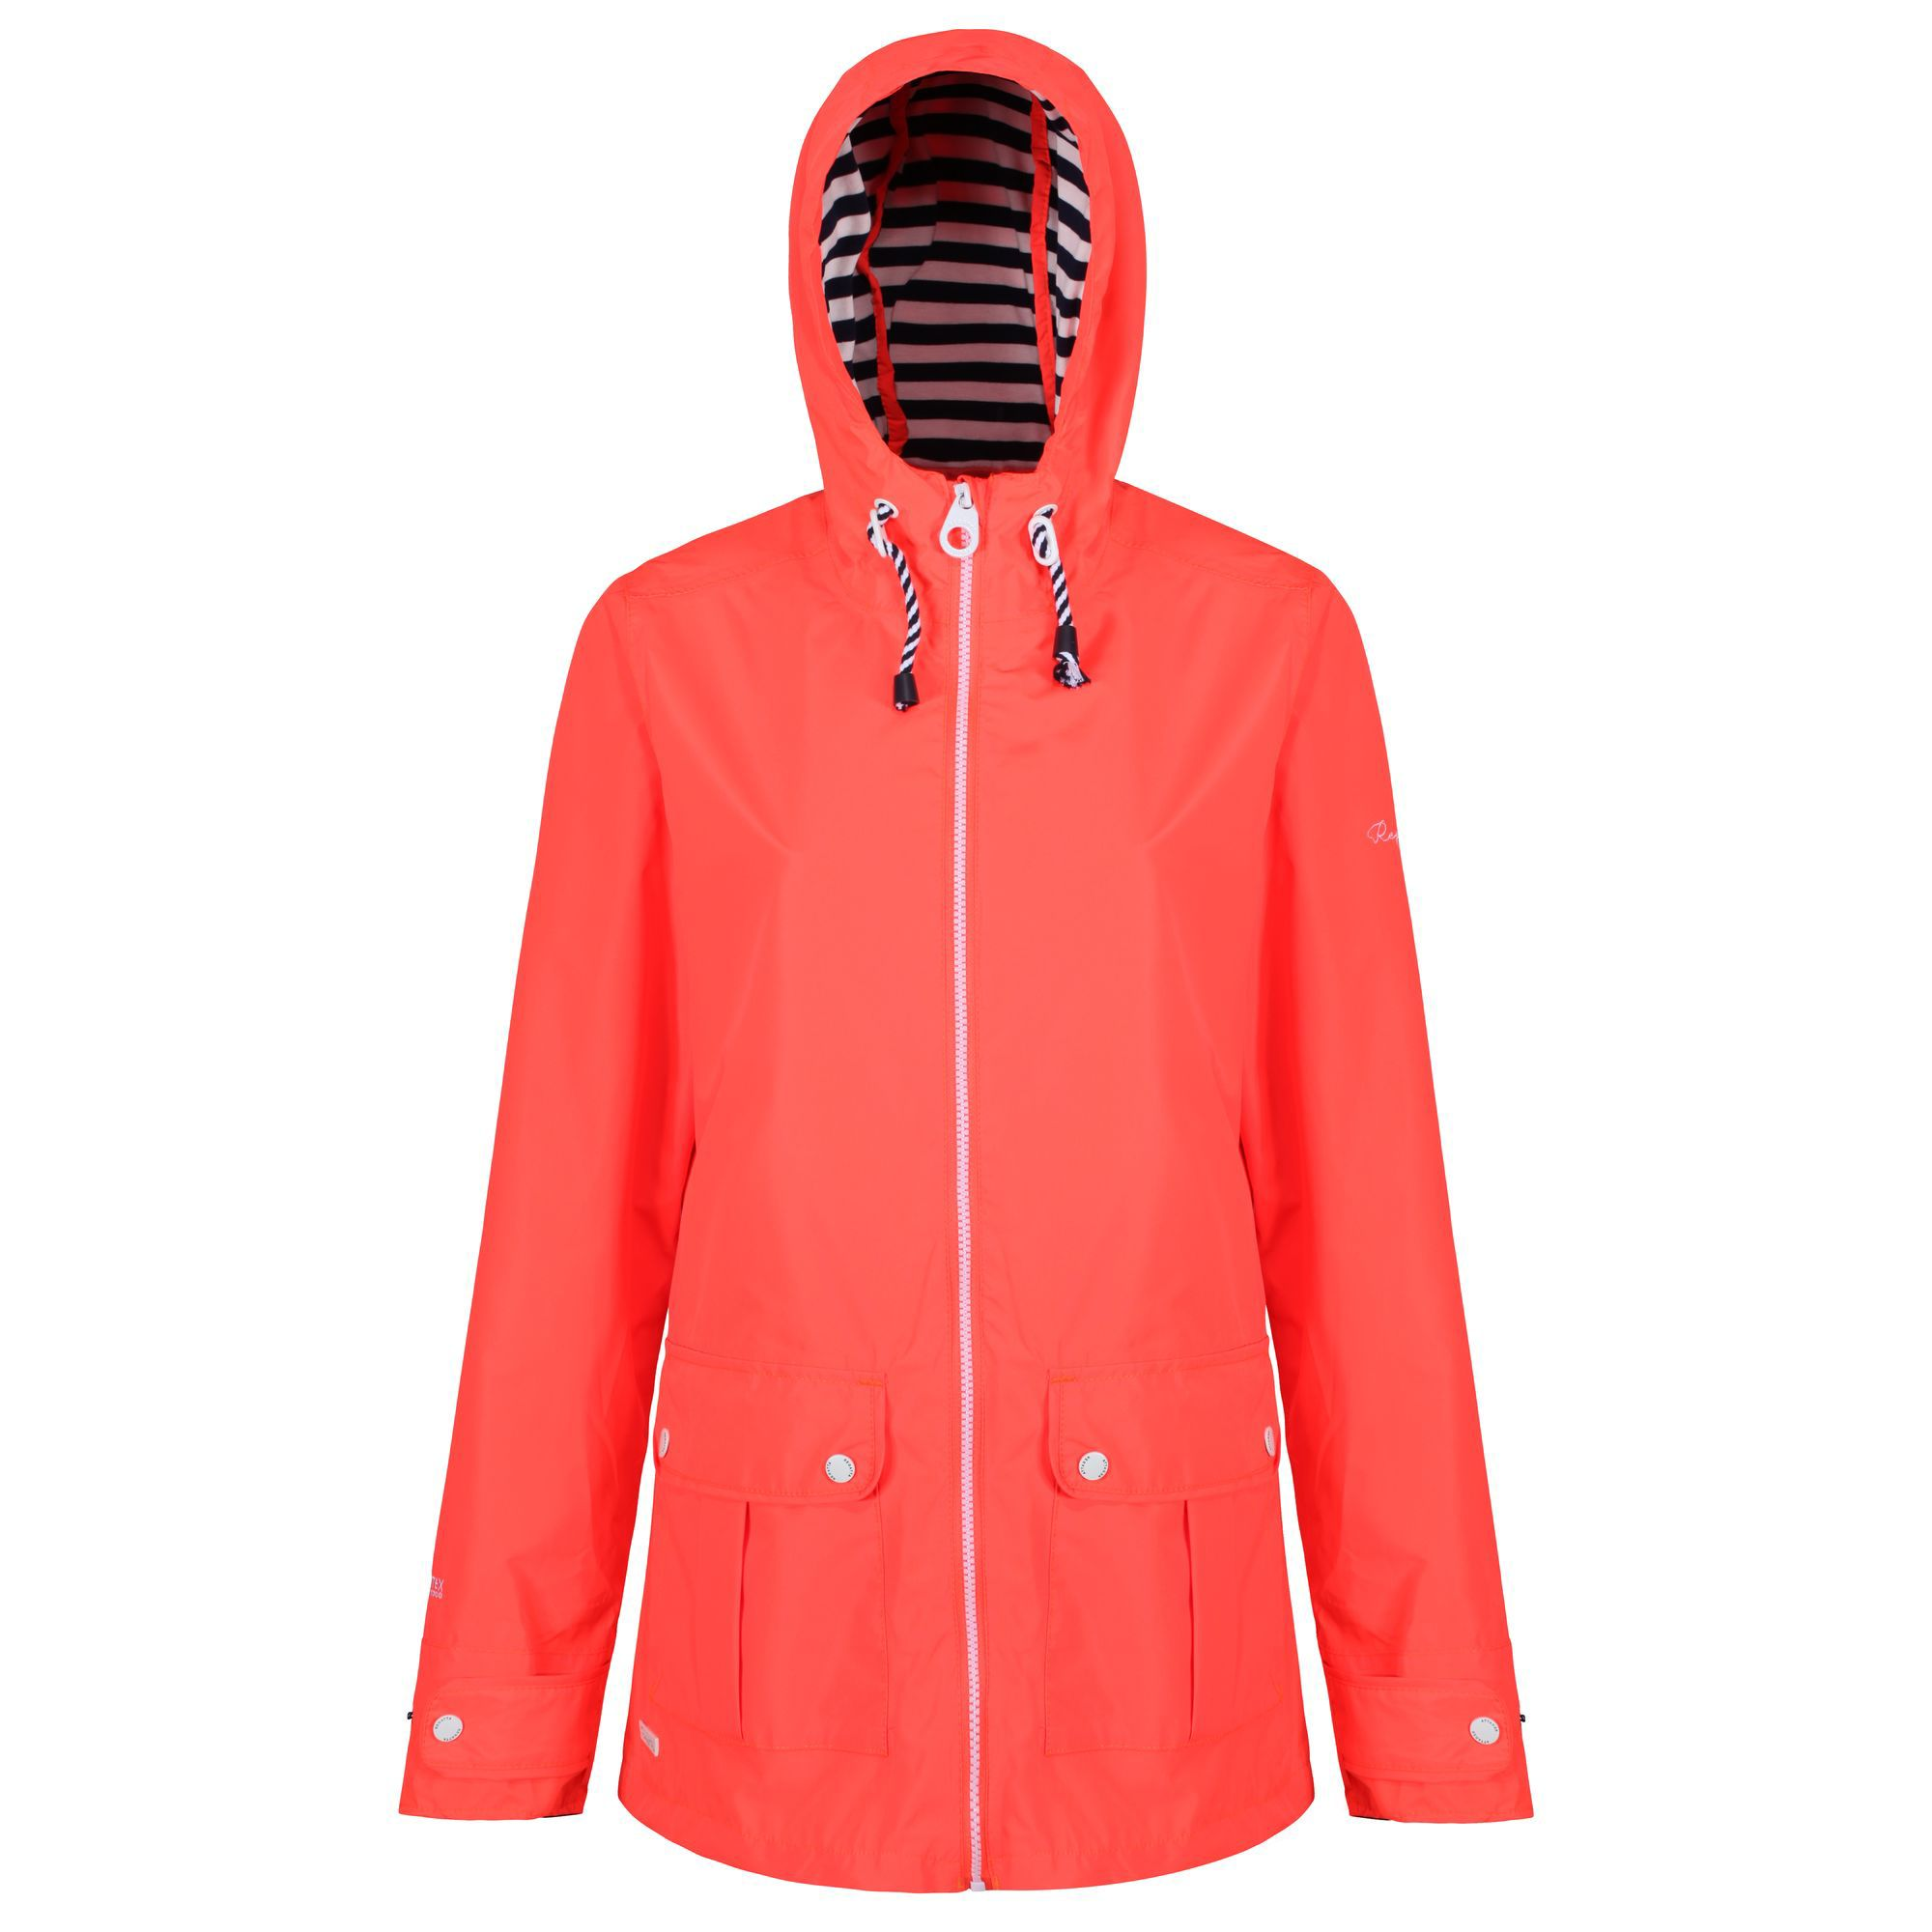 Regatta Bayeur Waterproof Jacket, Hot Coral